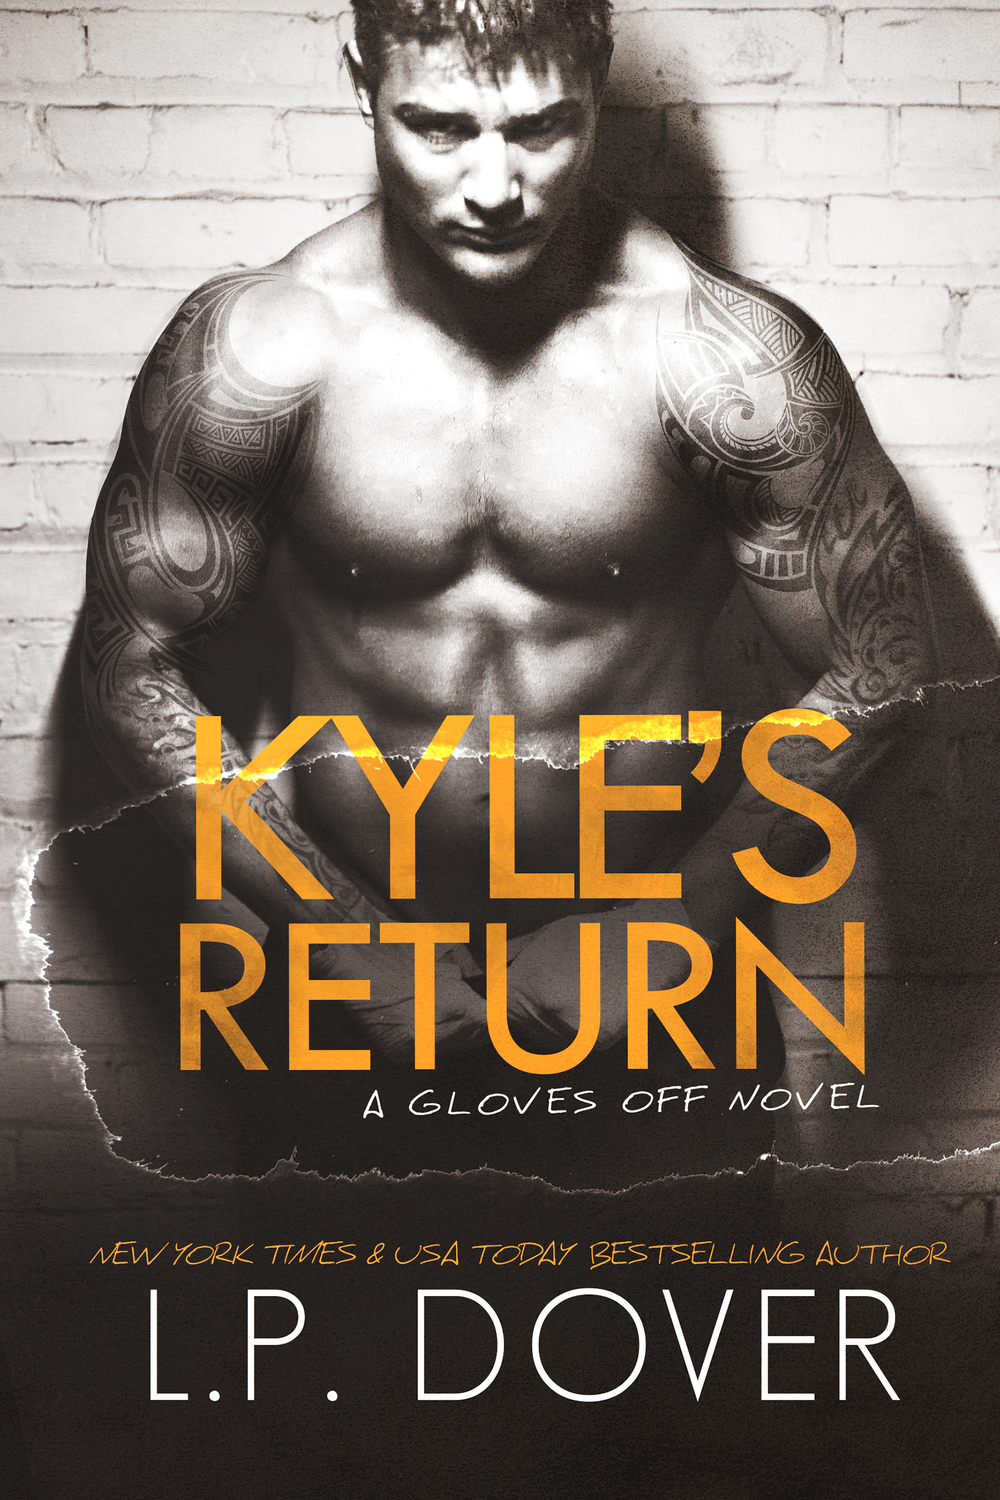 Kyles Return_ebooklg.jpg